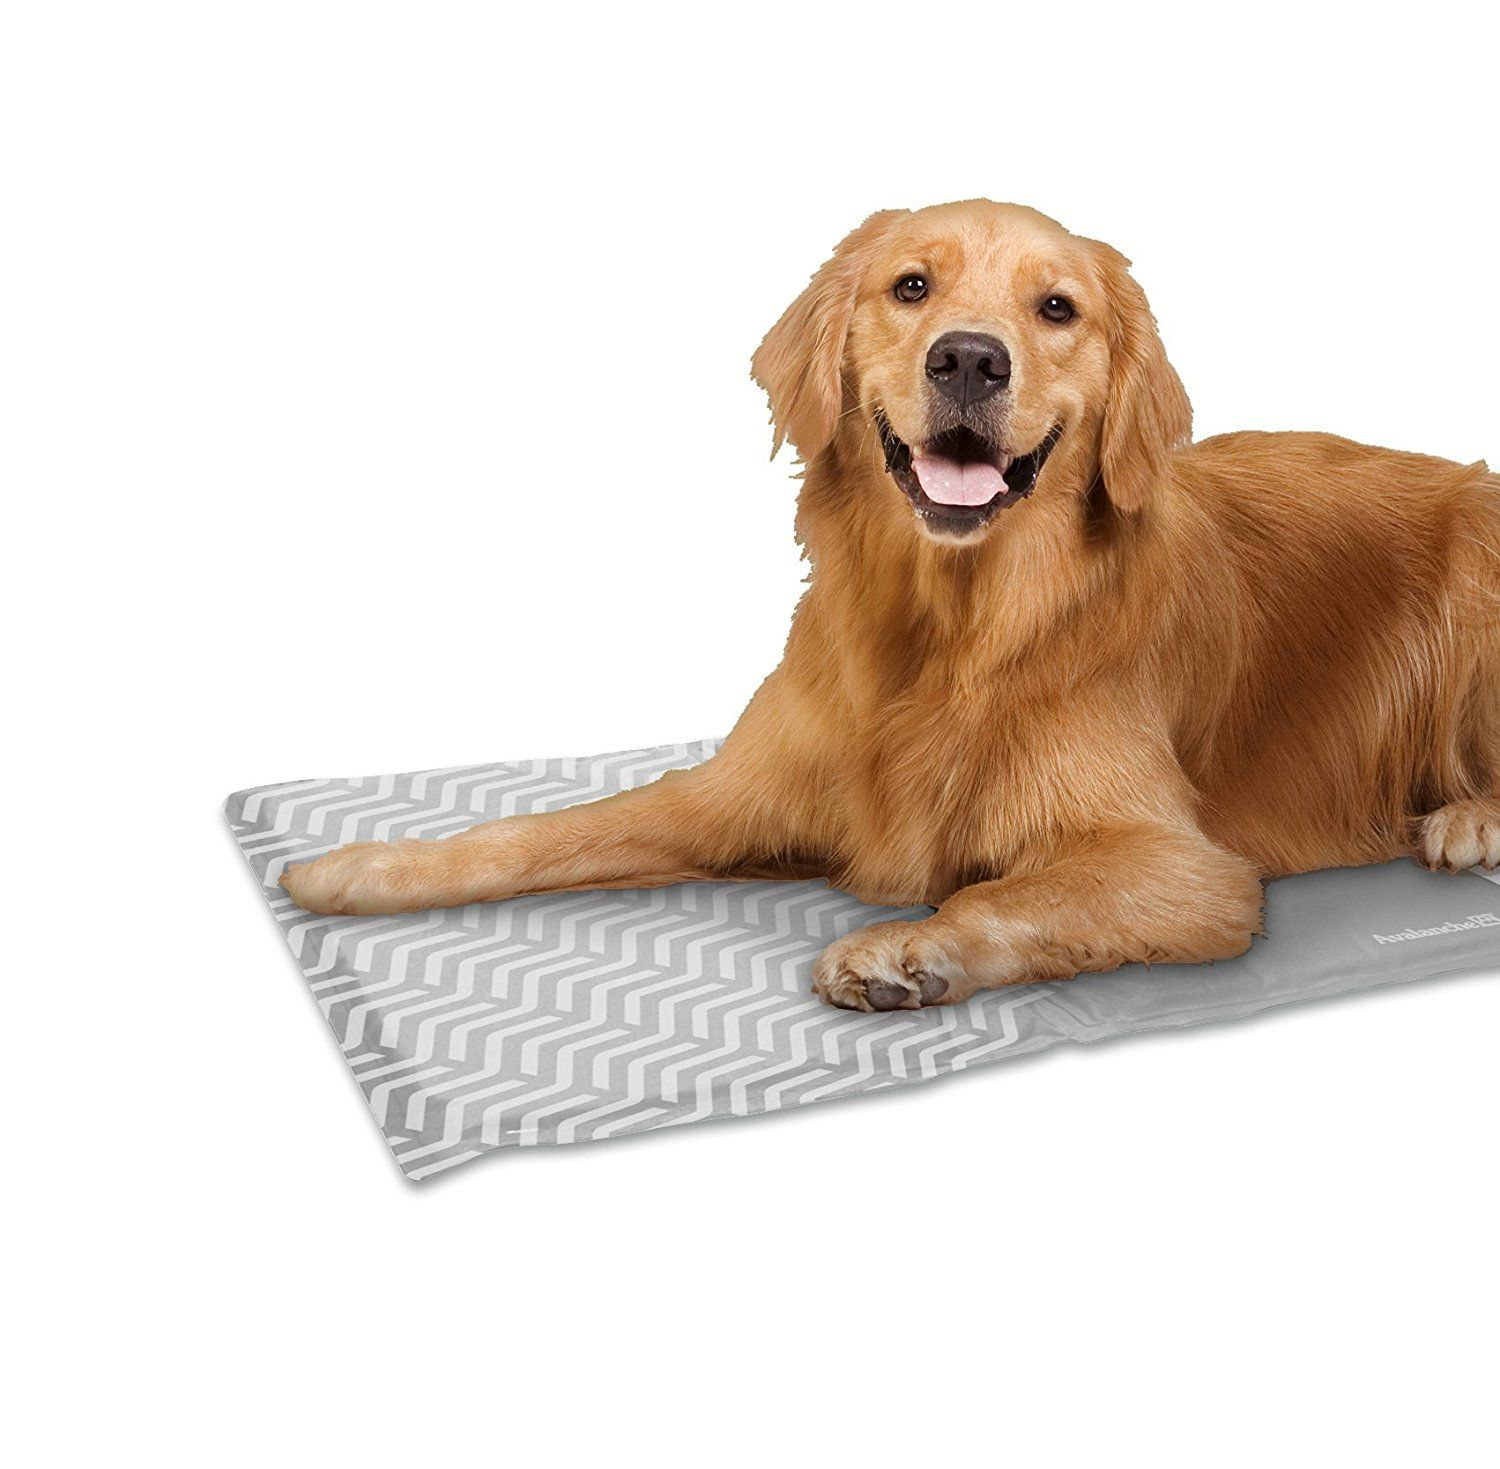 Avalanche Pet Cooling Mat Lightweight And Portable For Dogs And Cats And Other Pets Self Cooling And Non Toxic Gel This Cool Pad I Pet Cooling Mat Dogs Dog Cat